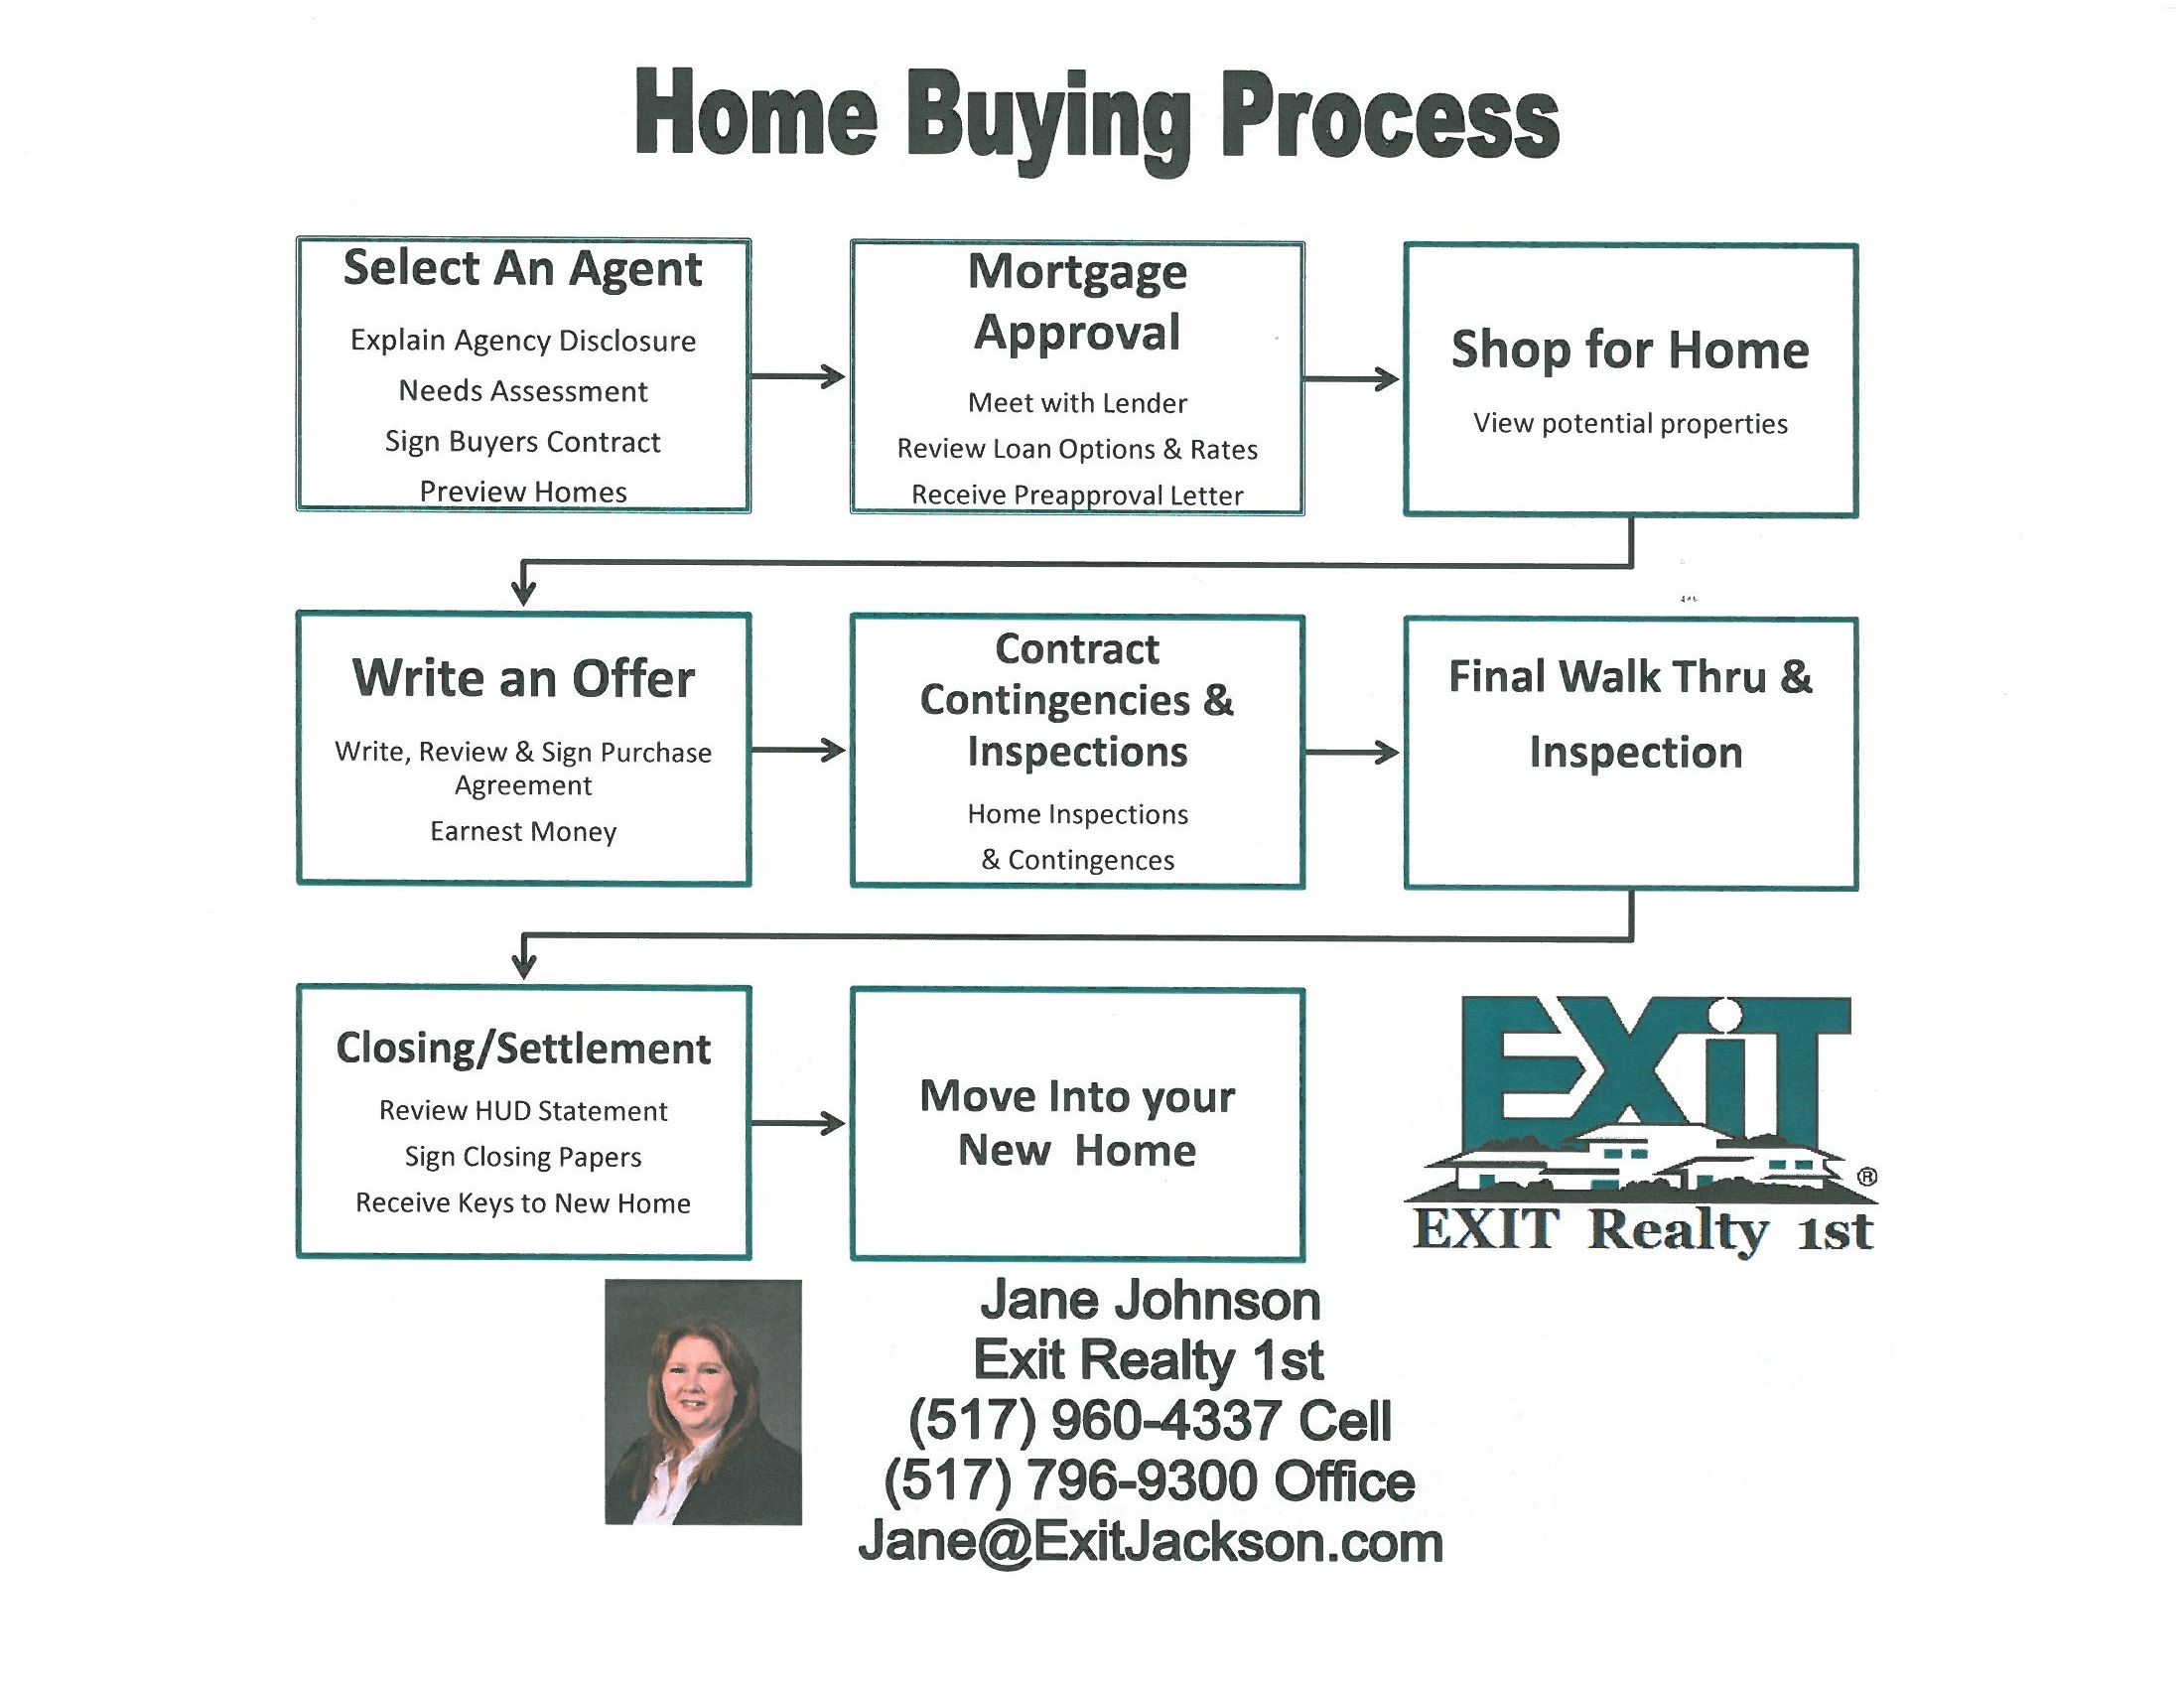 Buying a home should be an exciting time for people not stressful purchasing a new home is often an intimidating and confusing process this chart helps to lay out the steps to make it a less stressful experience nvjuhfo Image collections